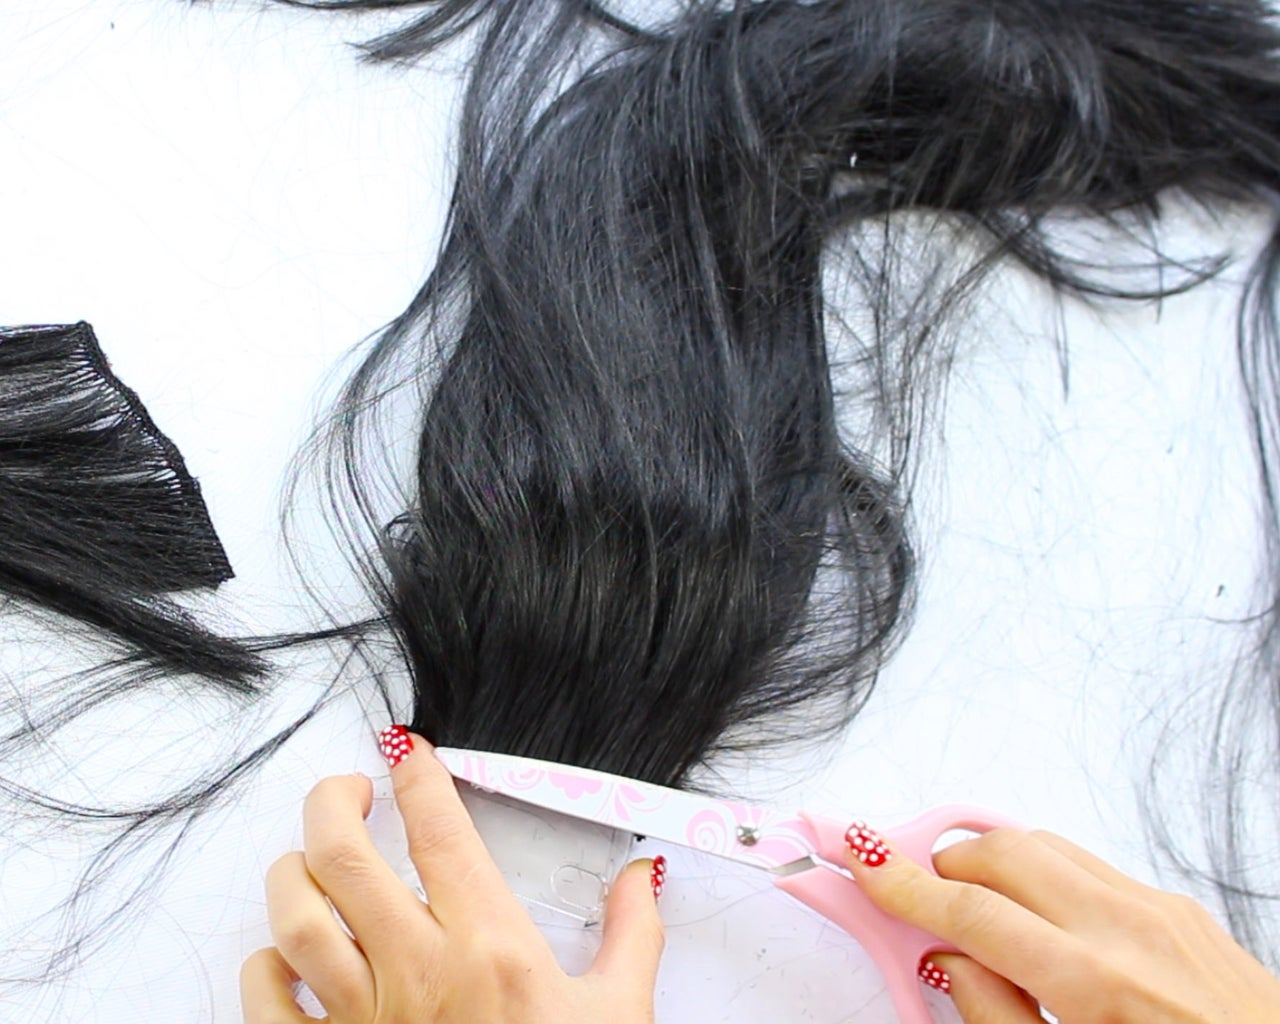 Gluing the Hair Sections